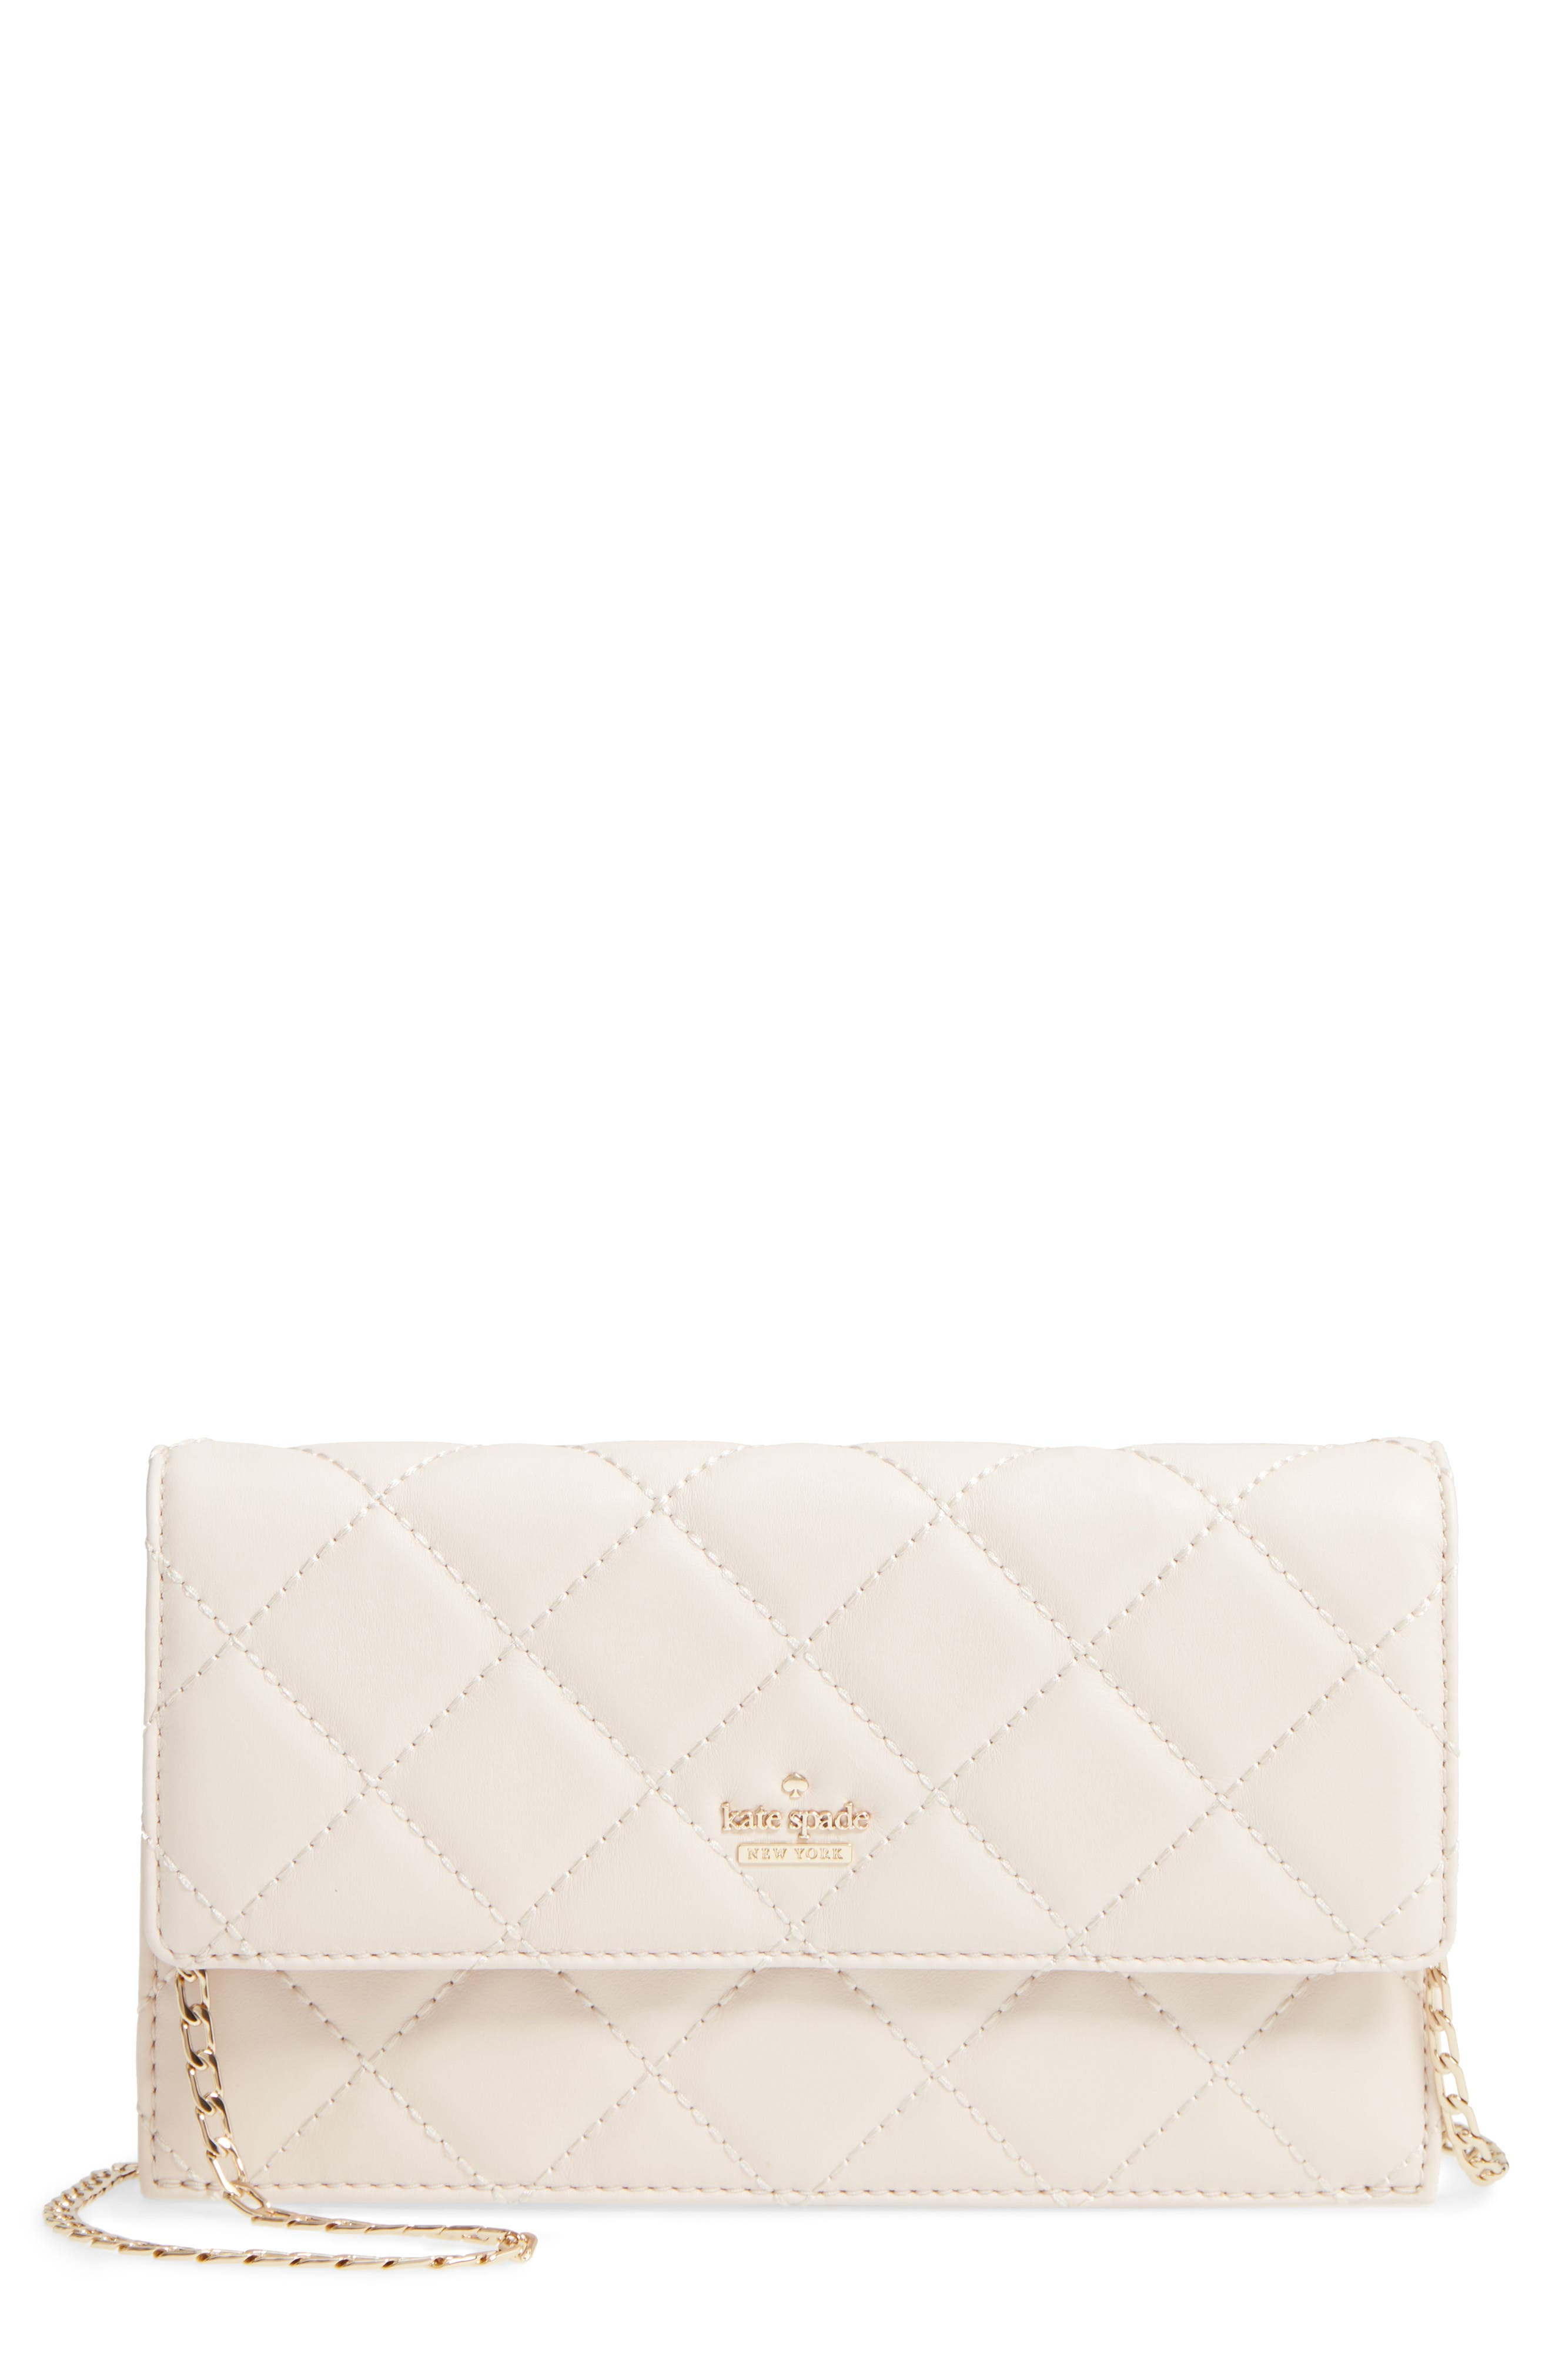 emerson place - brennan quilted leather,                             Main thumbnail 1, color,